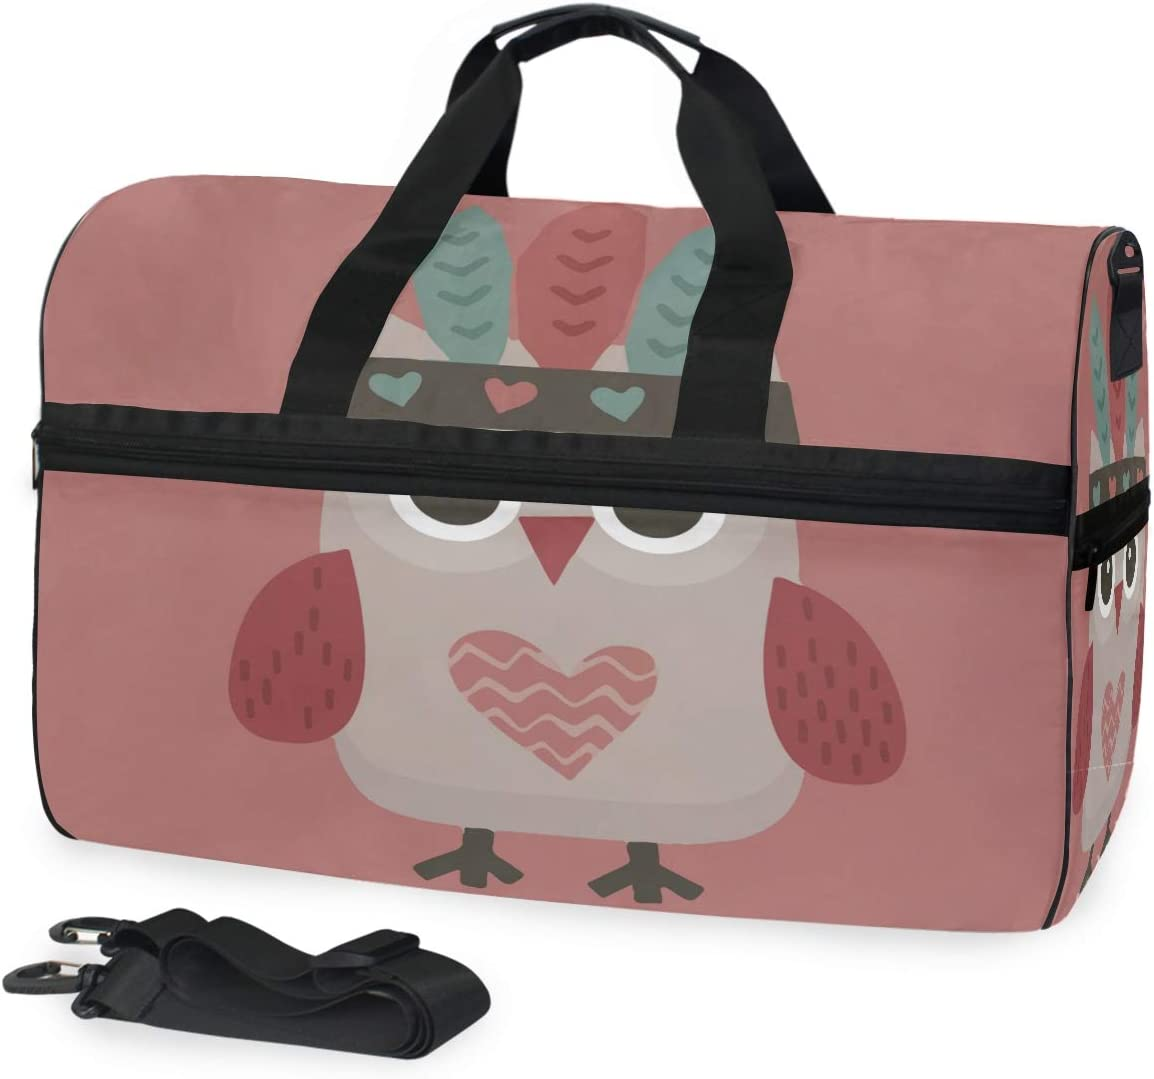 MUOOUM Owl Love Heart Tribe Large Duffle Bags Sports Gym Bag with Shoes Compartment for Men and Women